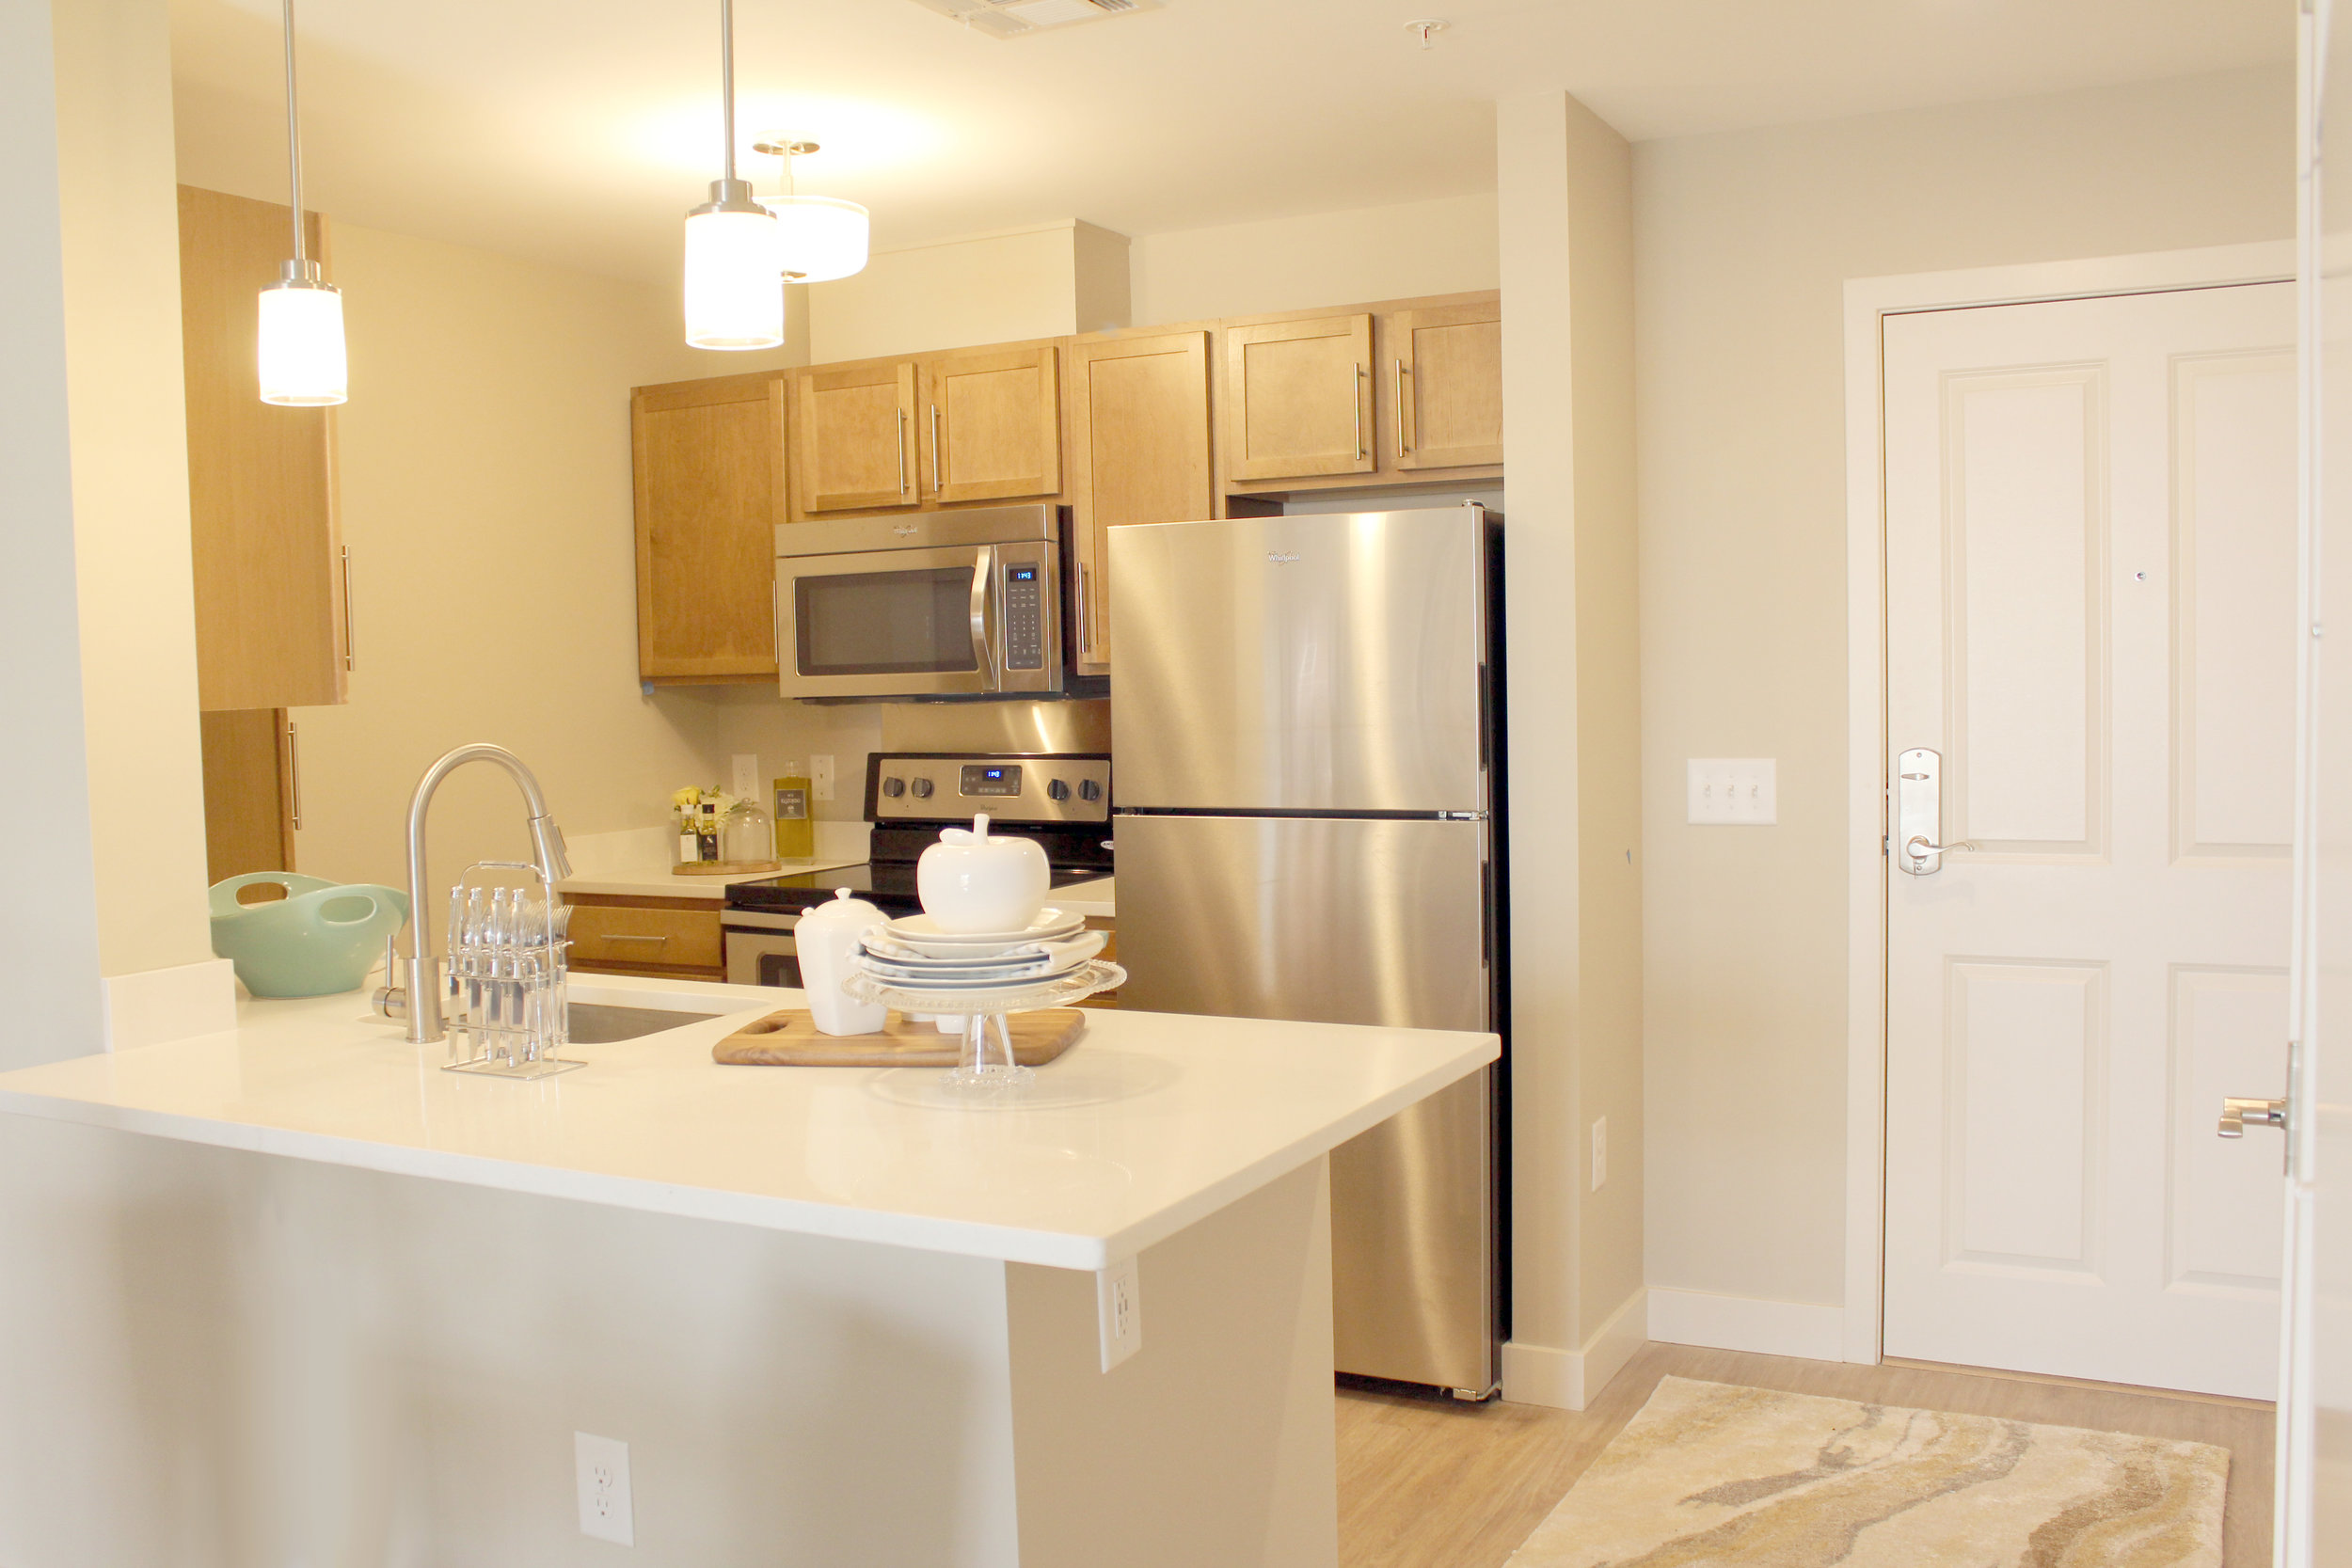 Riverwalk 1-KitchenFinal 2031.jpg